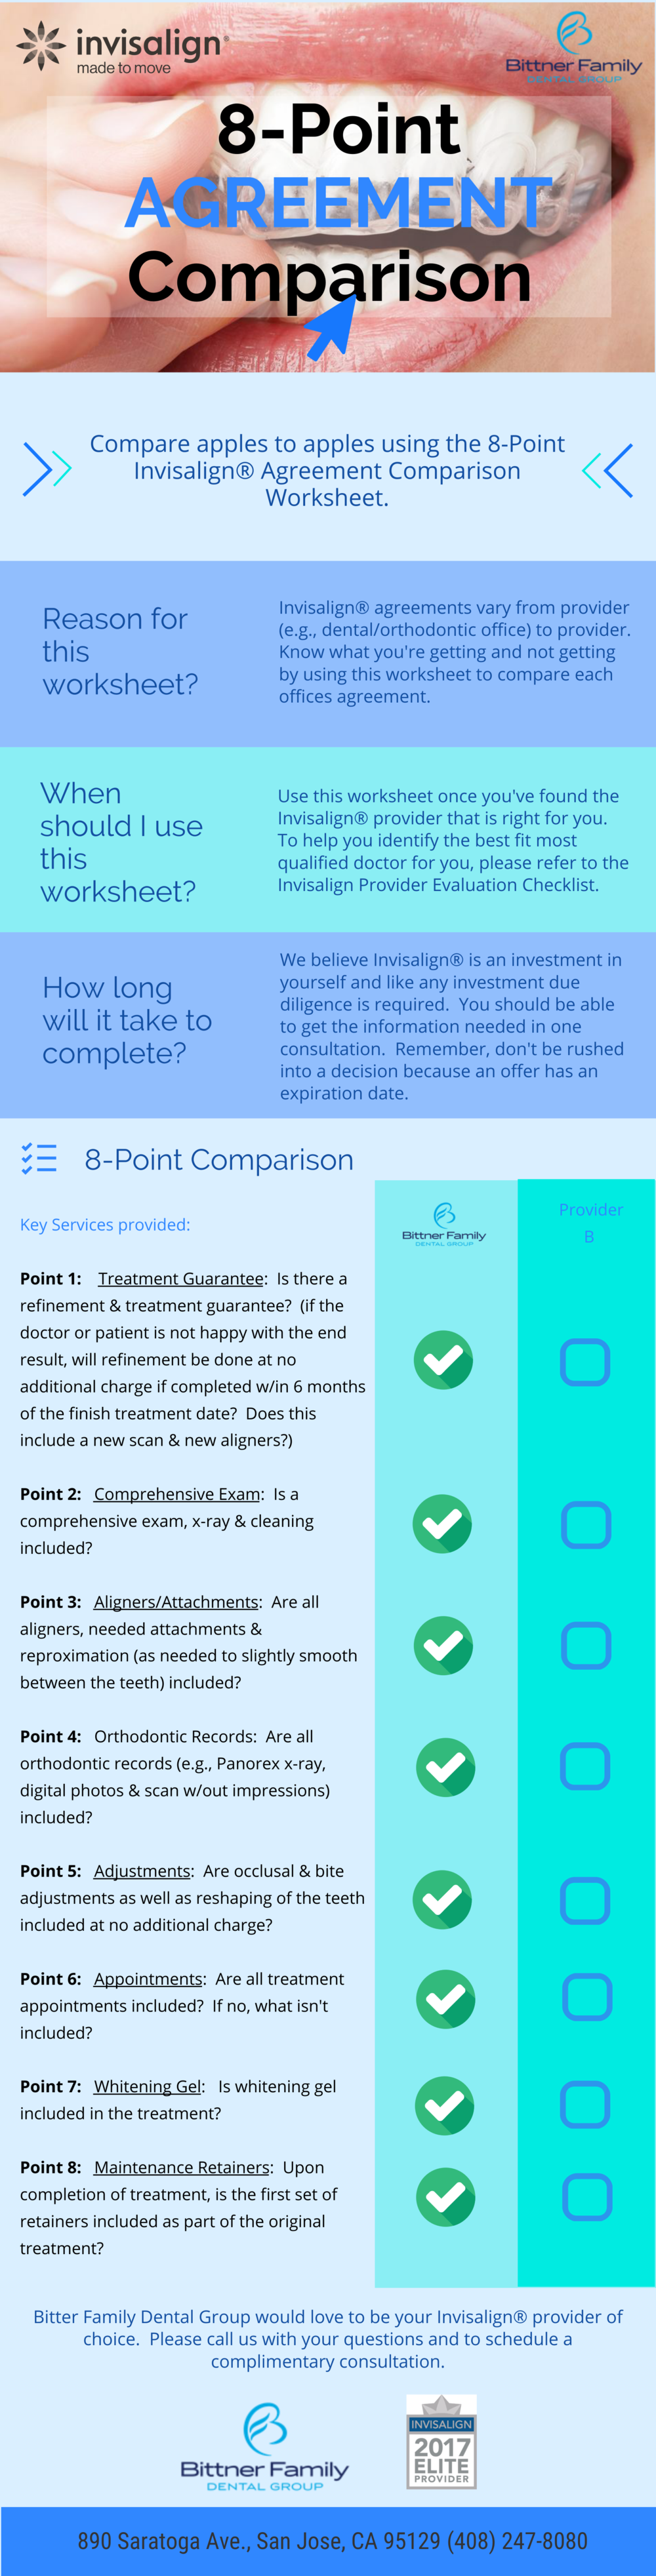 Invisalign 8-Point Agreement Comparision